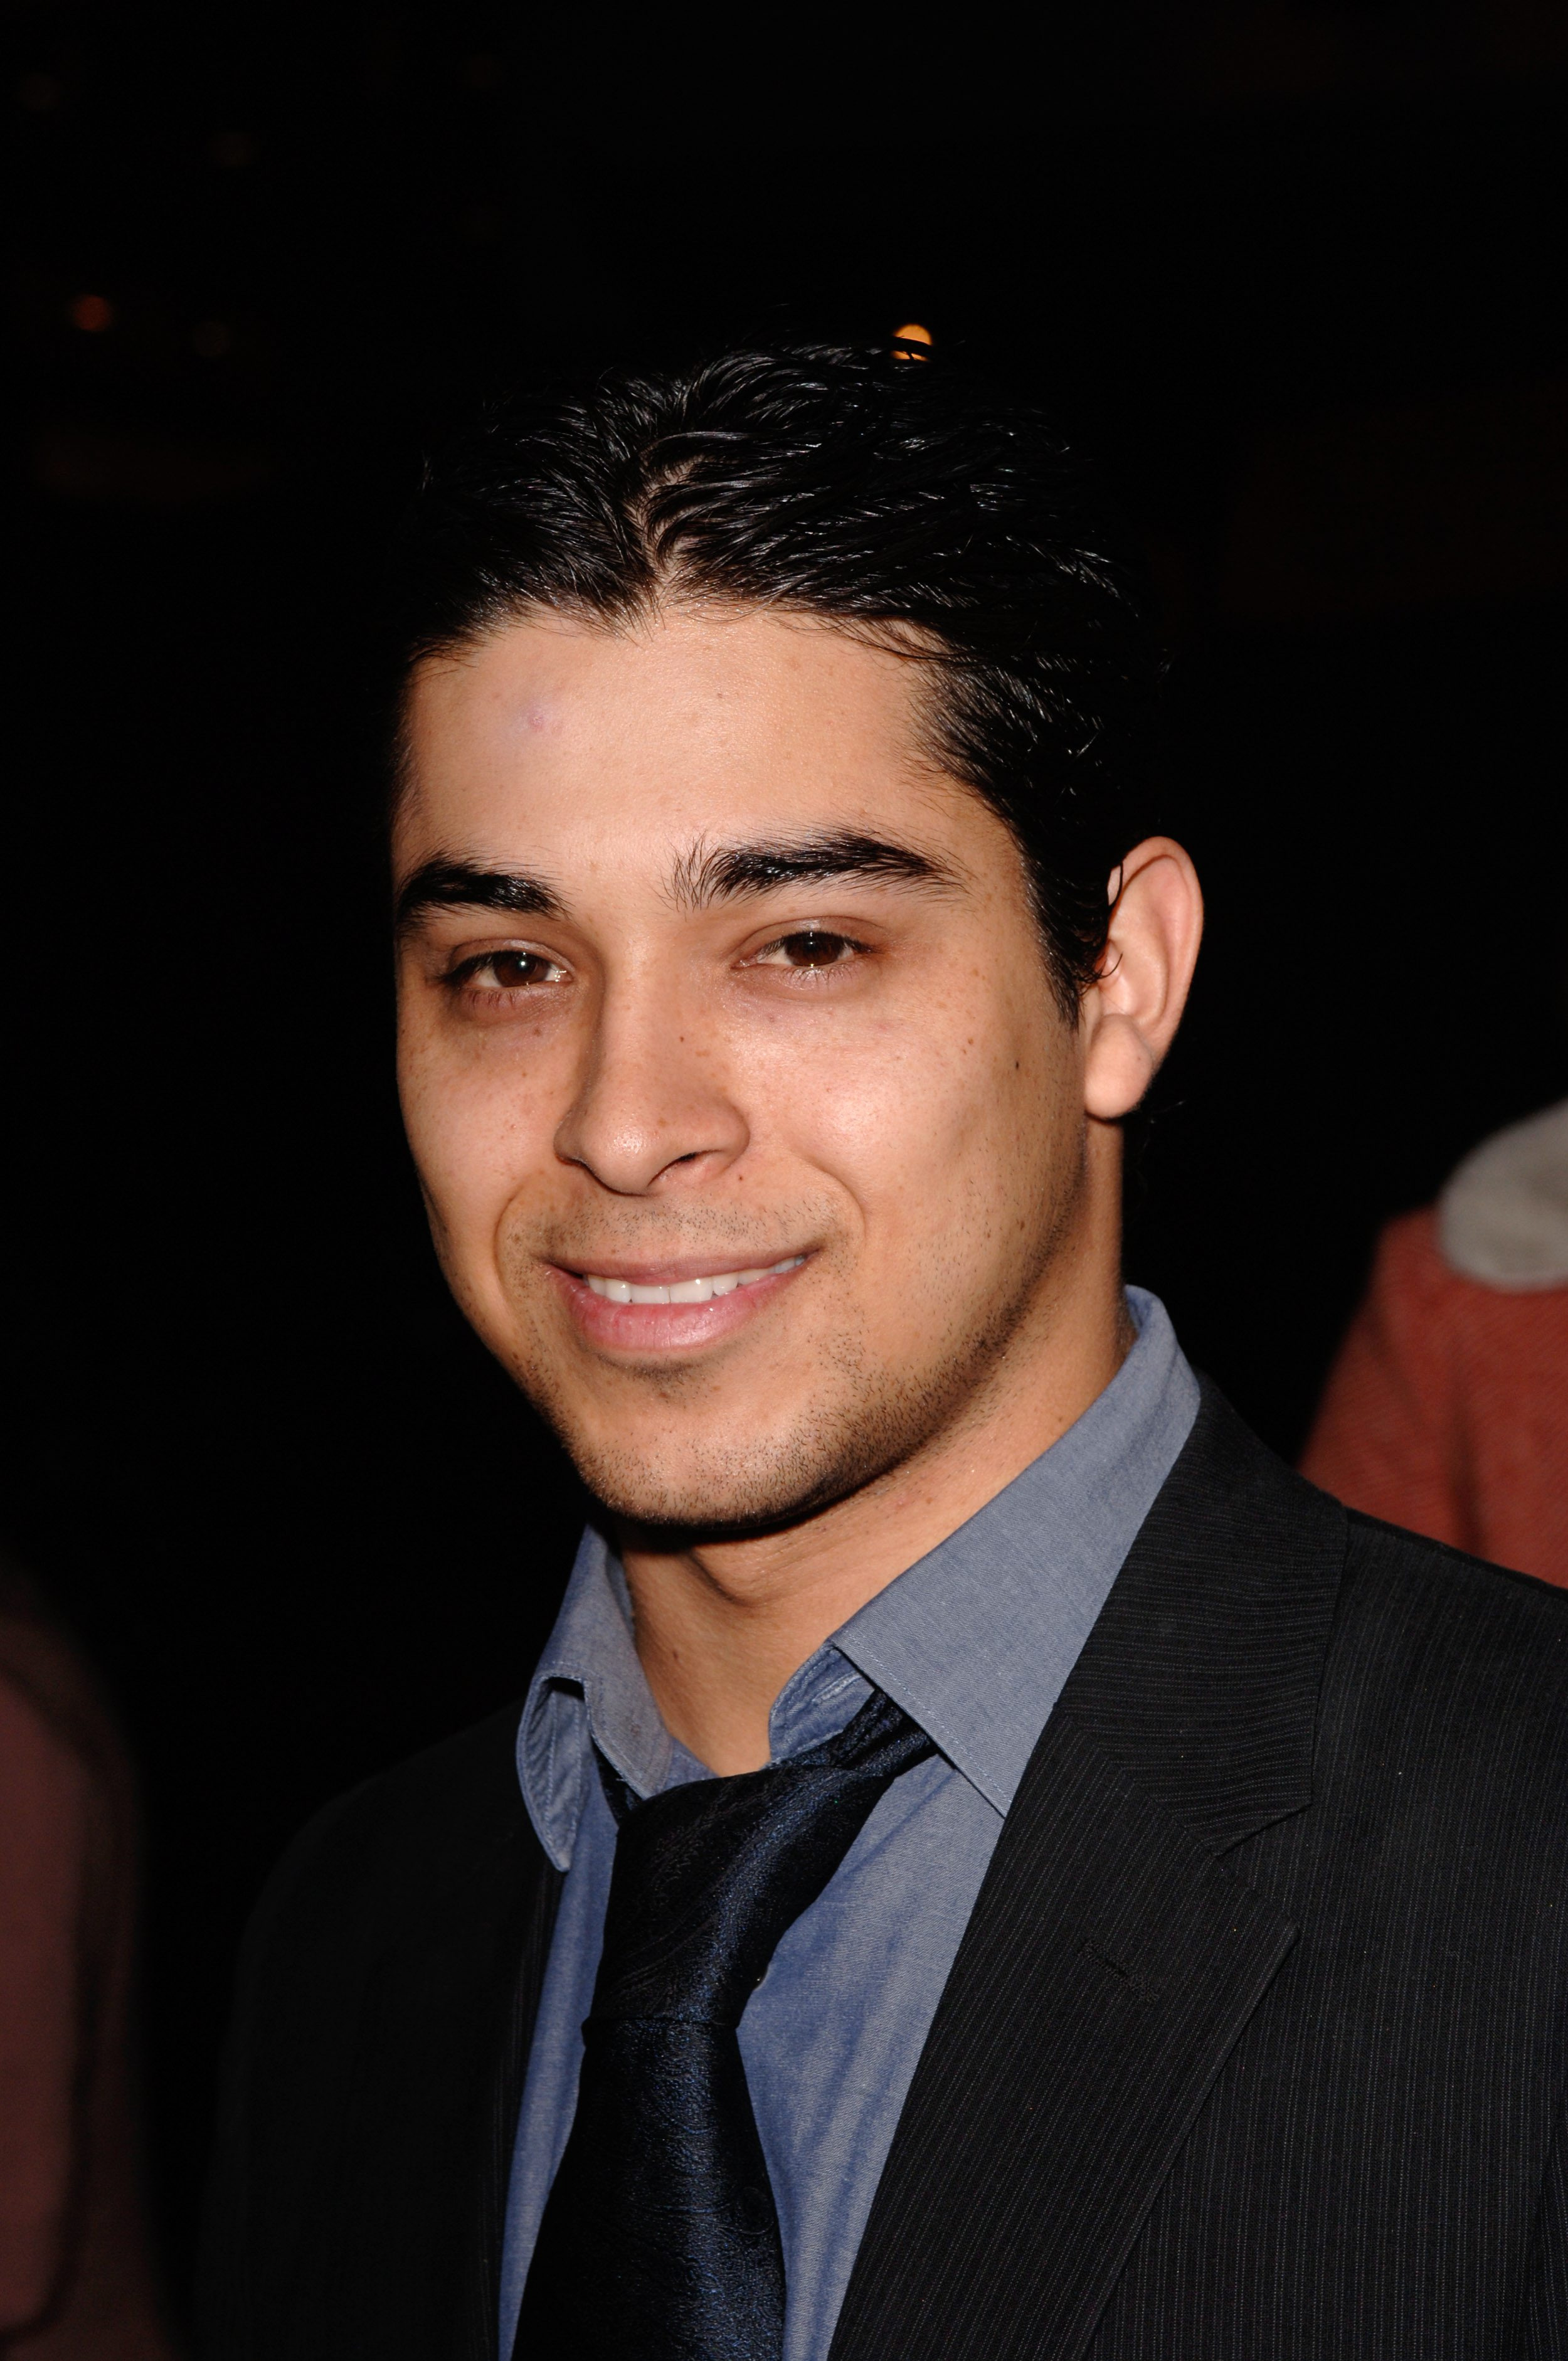 Wilmer Valderrama photo, pics, wallpaper - photo #